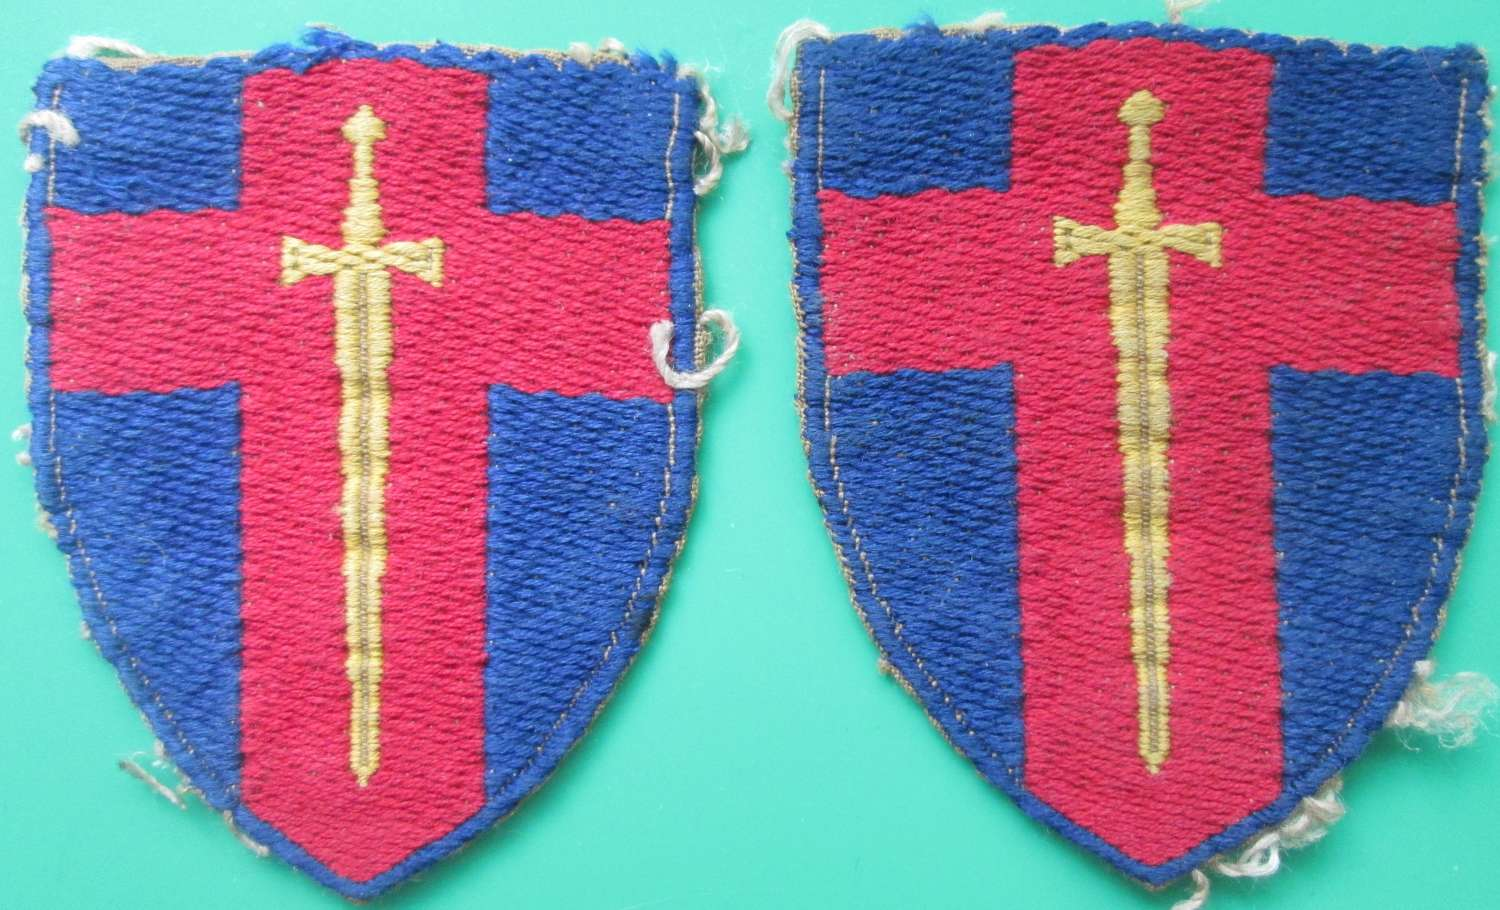 A PAIR OF RHINE ARMY TROOPS FORMATION SIGNS